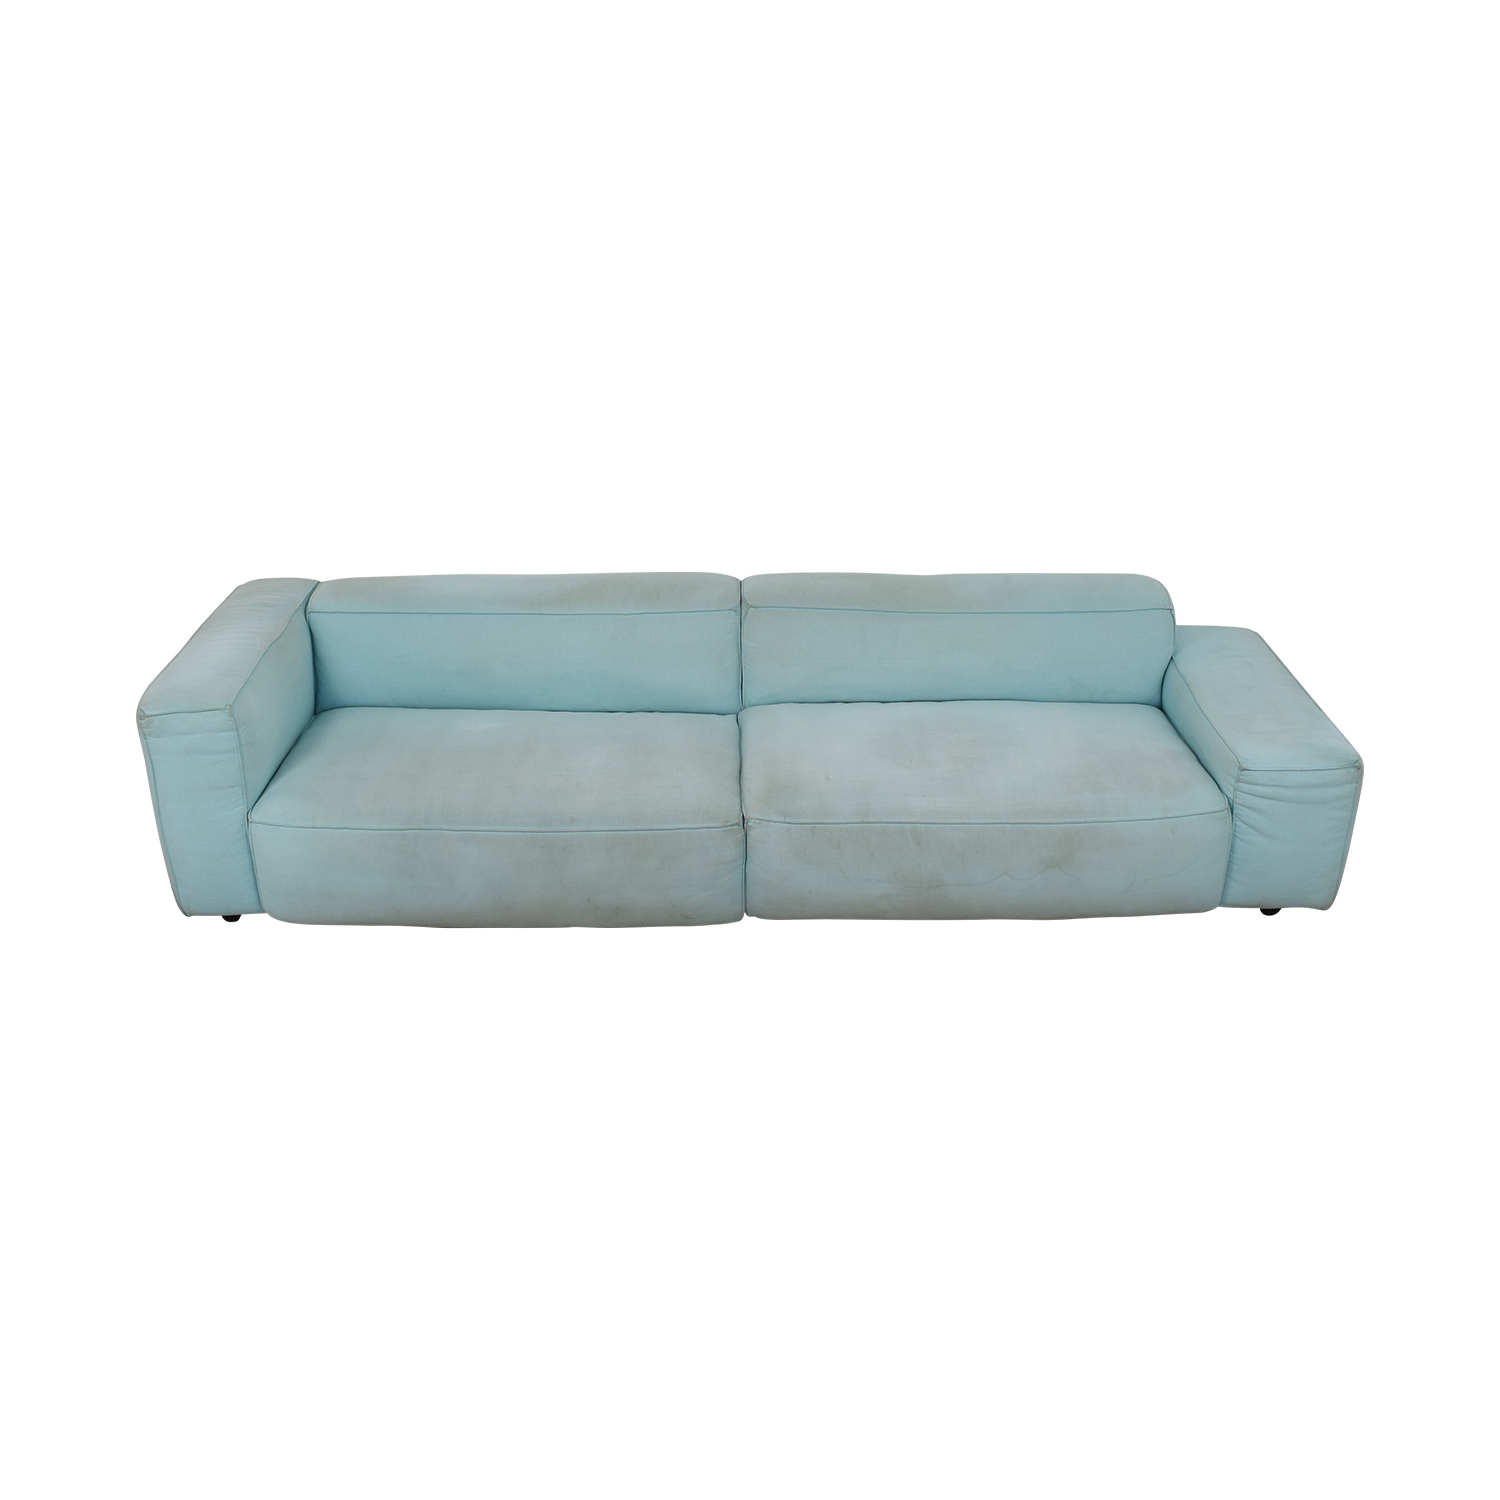 Interior Define Interior Define Two-Piece Sectional Sofa price